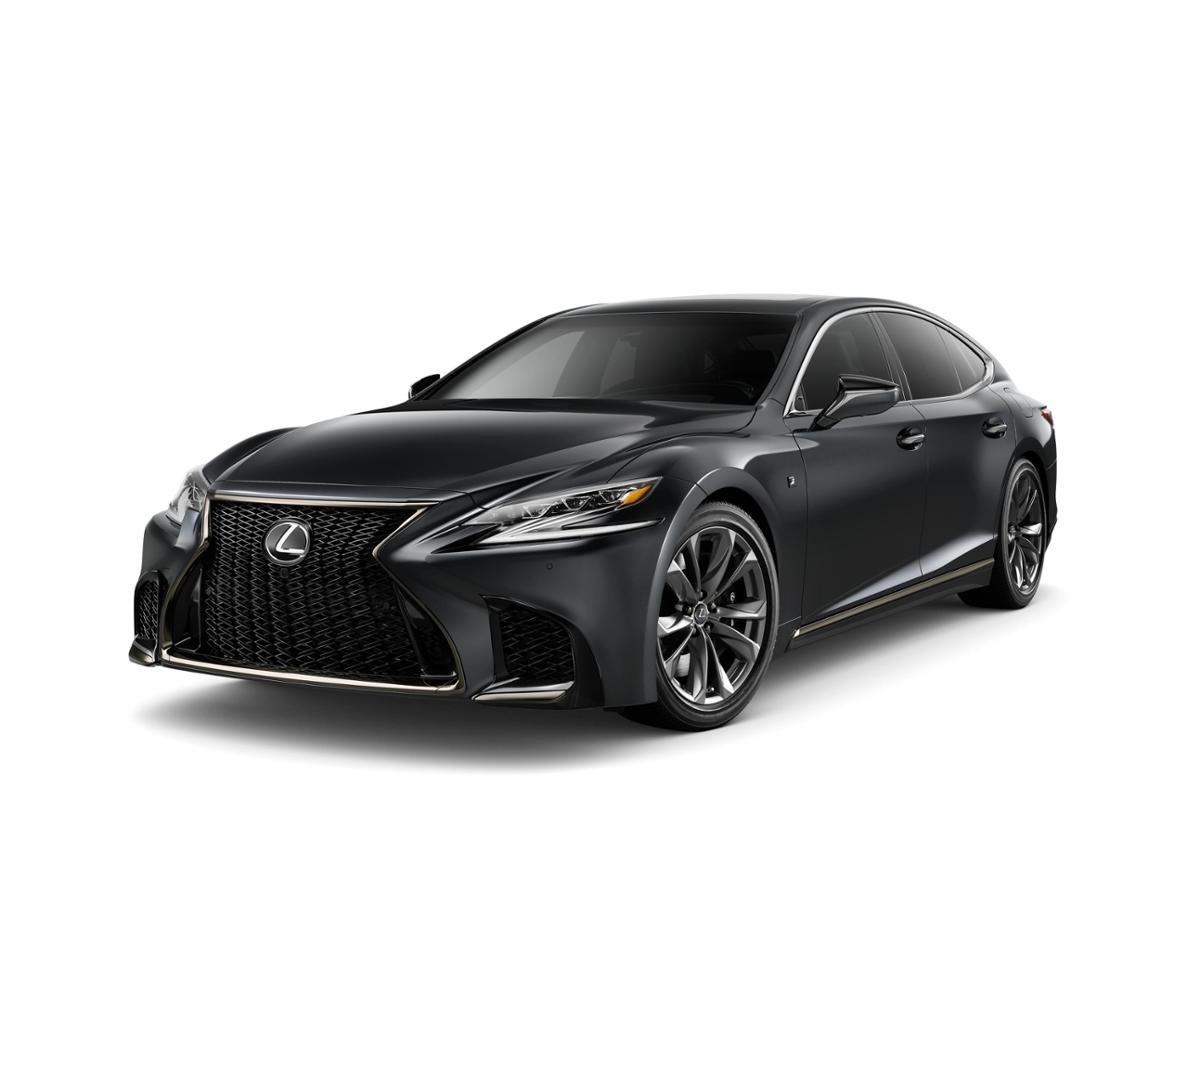 Sewell Lexus Fort Worth >> Fort Worth New 2018 Lexus LS 500 Caviar: Car for Sale in DFW - JTHB51FF0J5001101